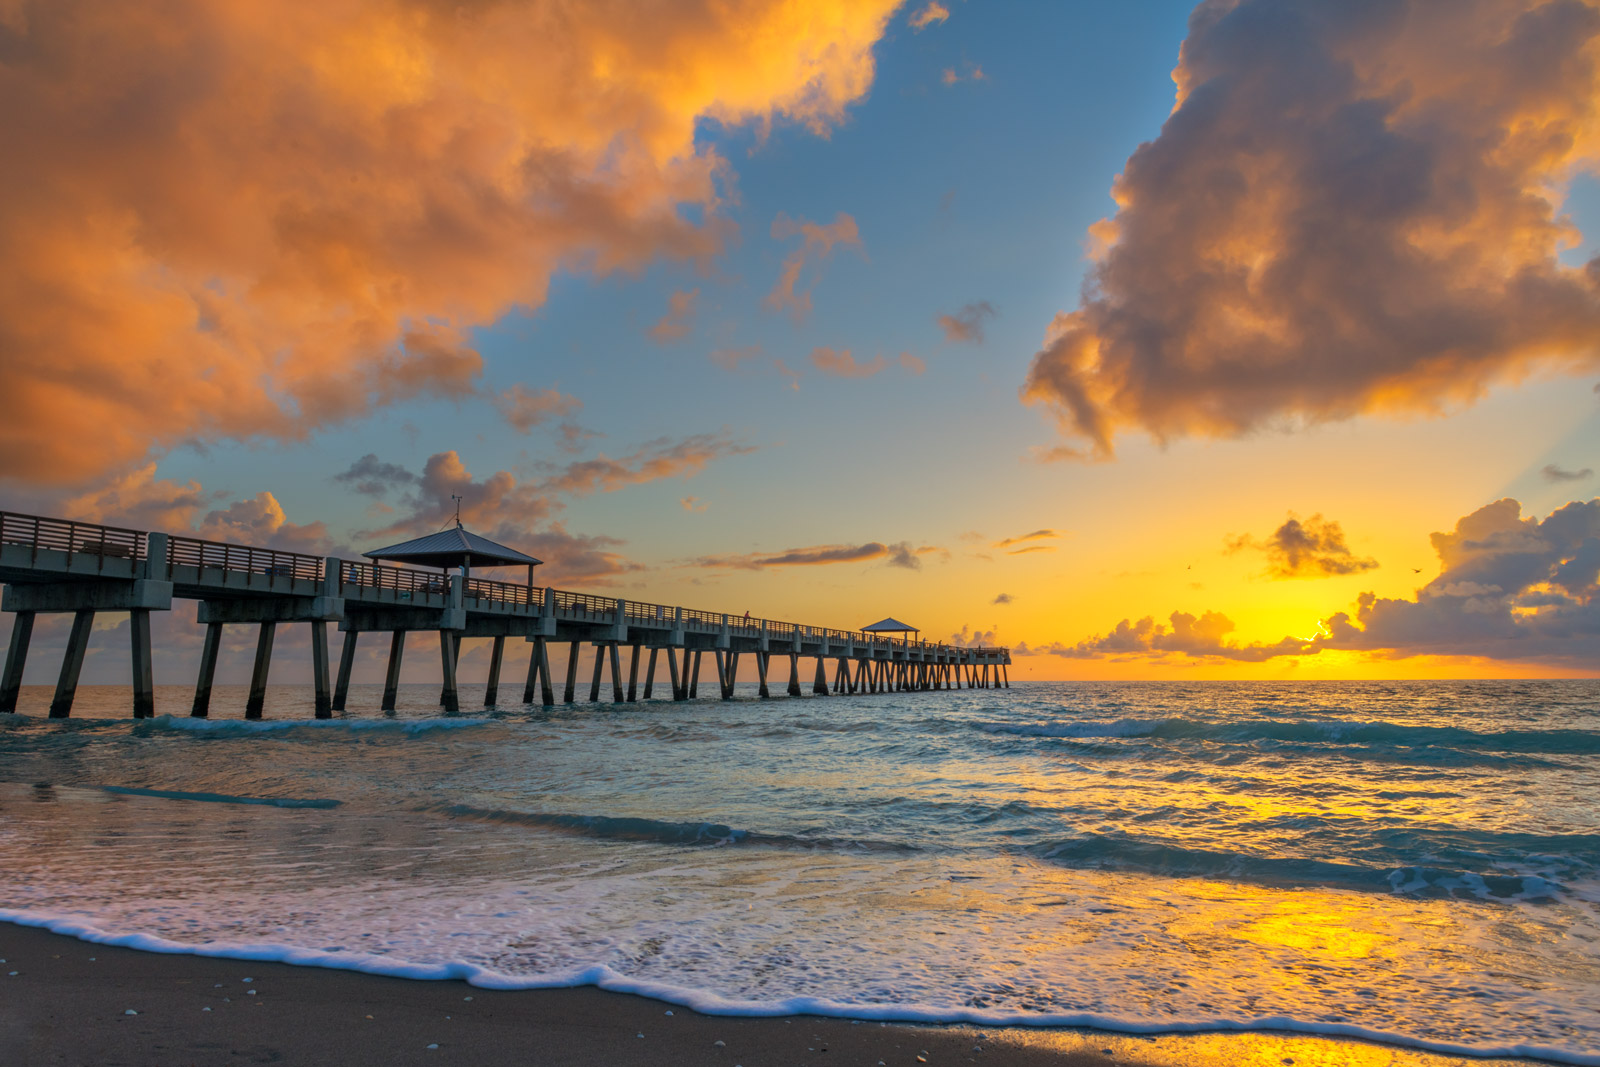 A Limited Edition, Fine Art photograph of the Juno Beach pier in Juno Beach, Florida with a stunning sunrise over the Atlantic...